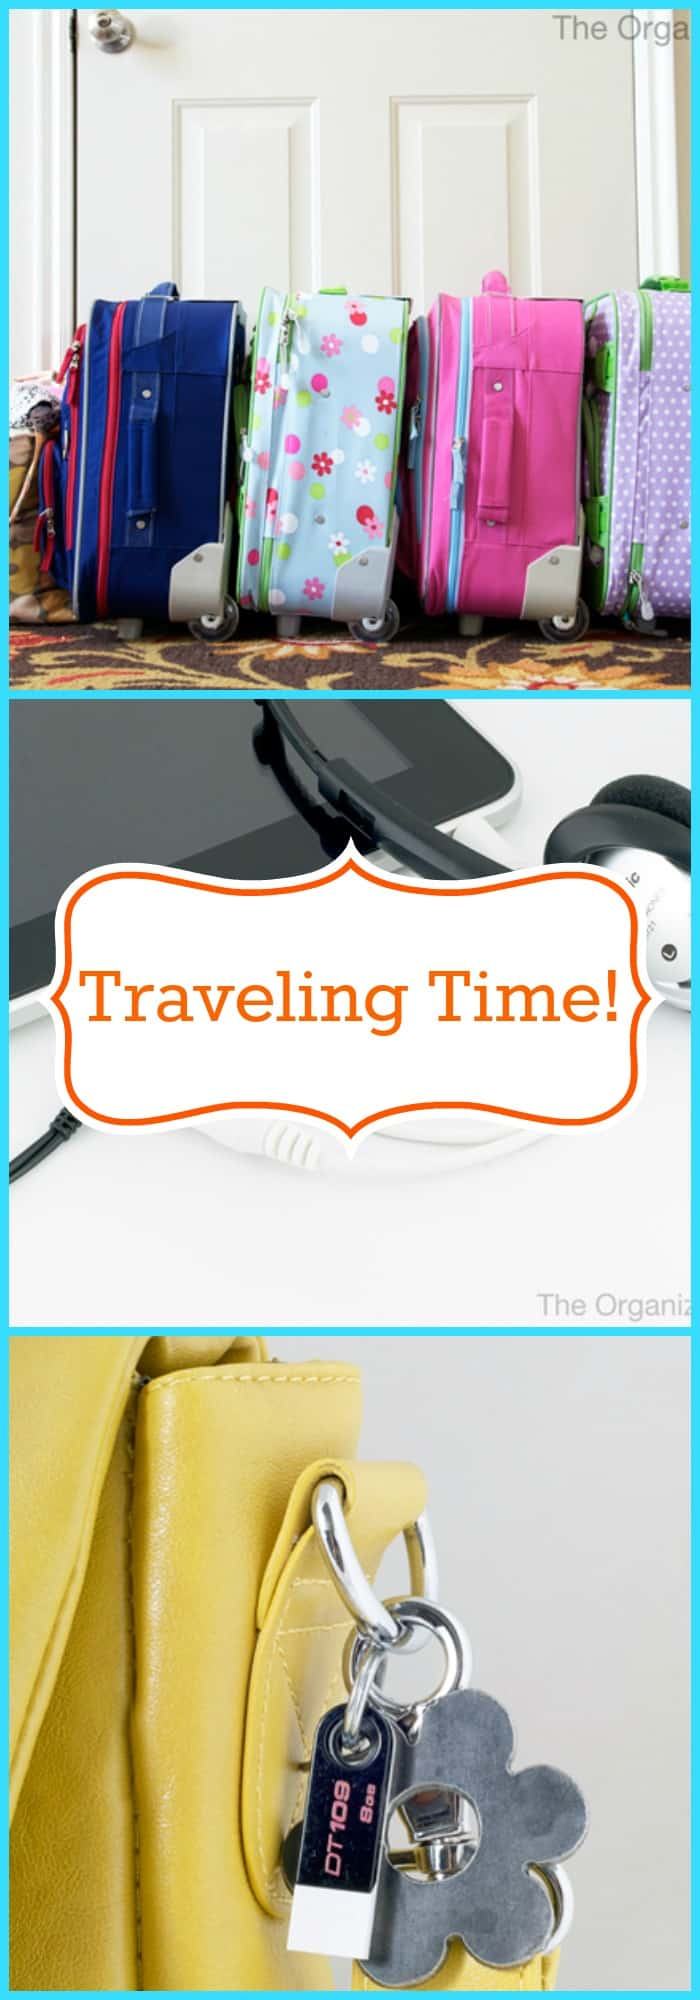 Travel--Traveling With Kids--The Organized Mom